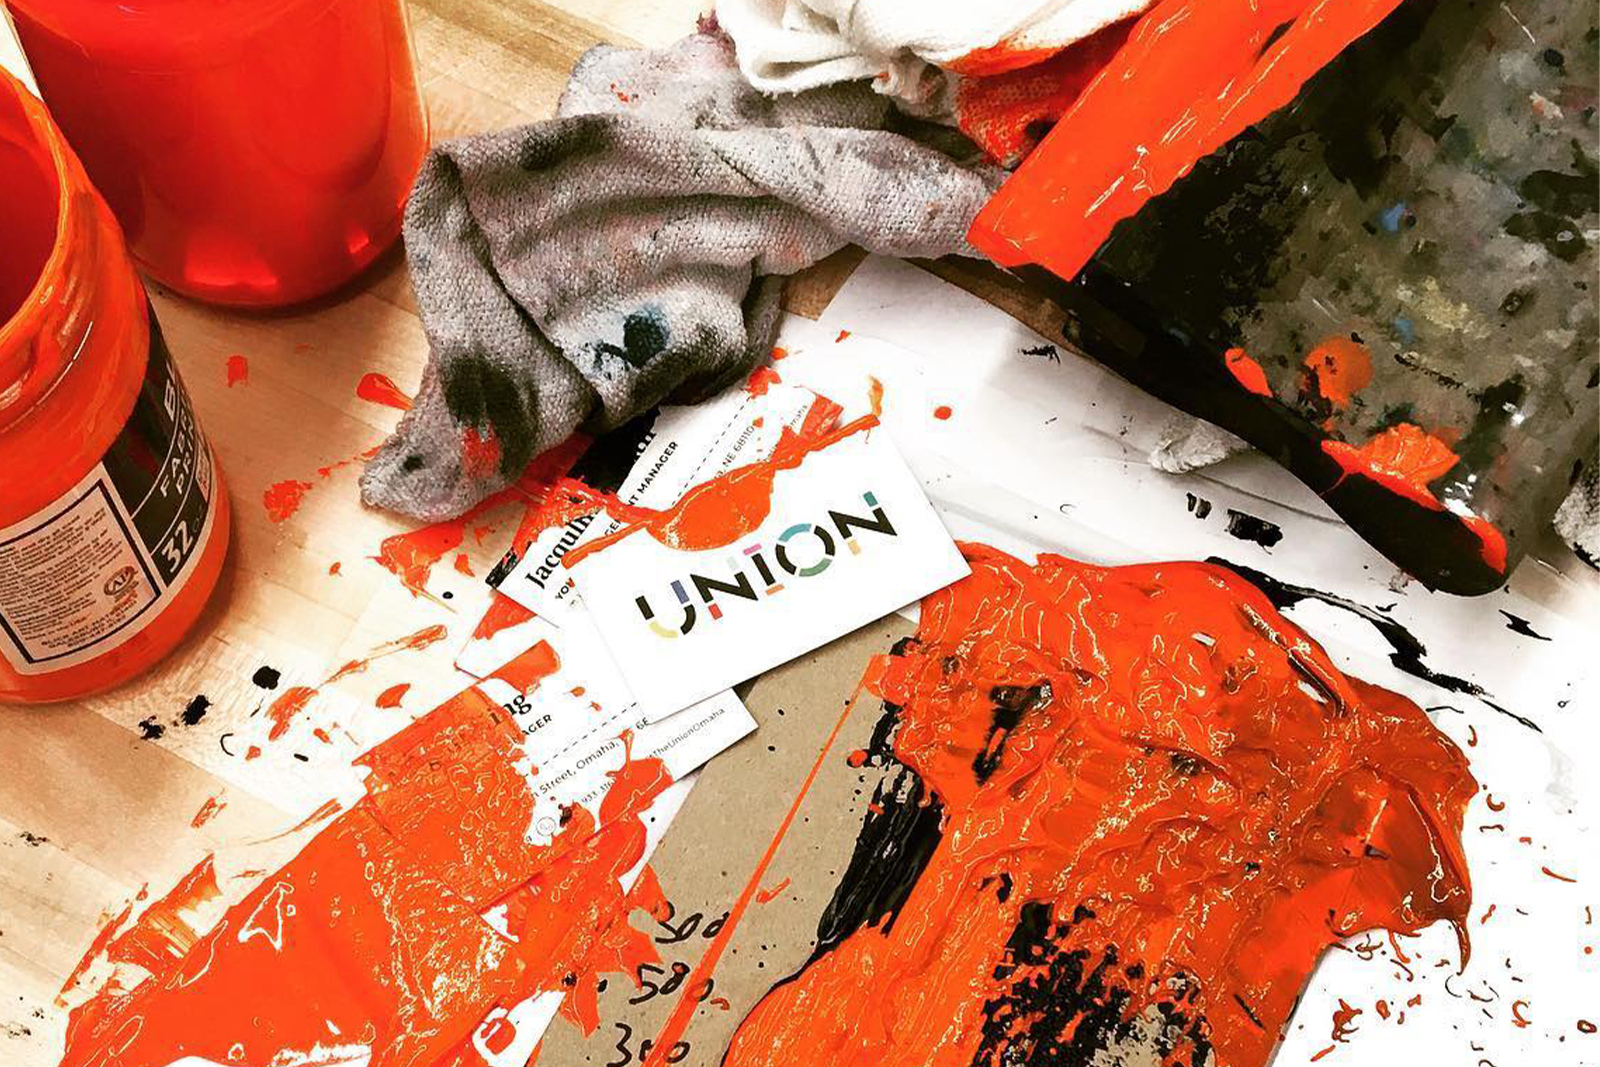 Co Op Distanced Membership Orange screen printing ink covers a messy work station that also inlcudes a blackened rag ink covered squeegie and Union business cards